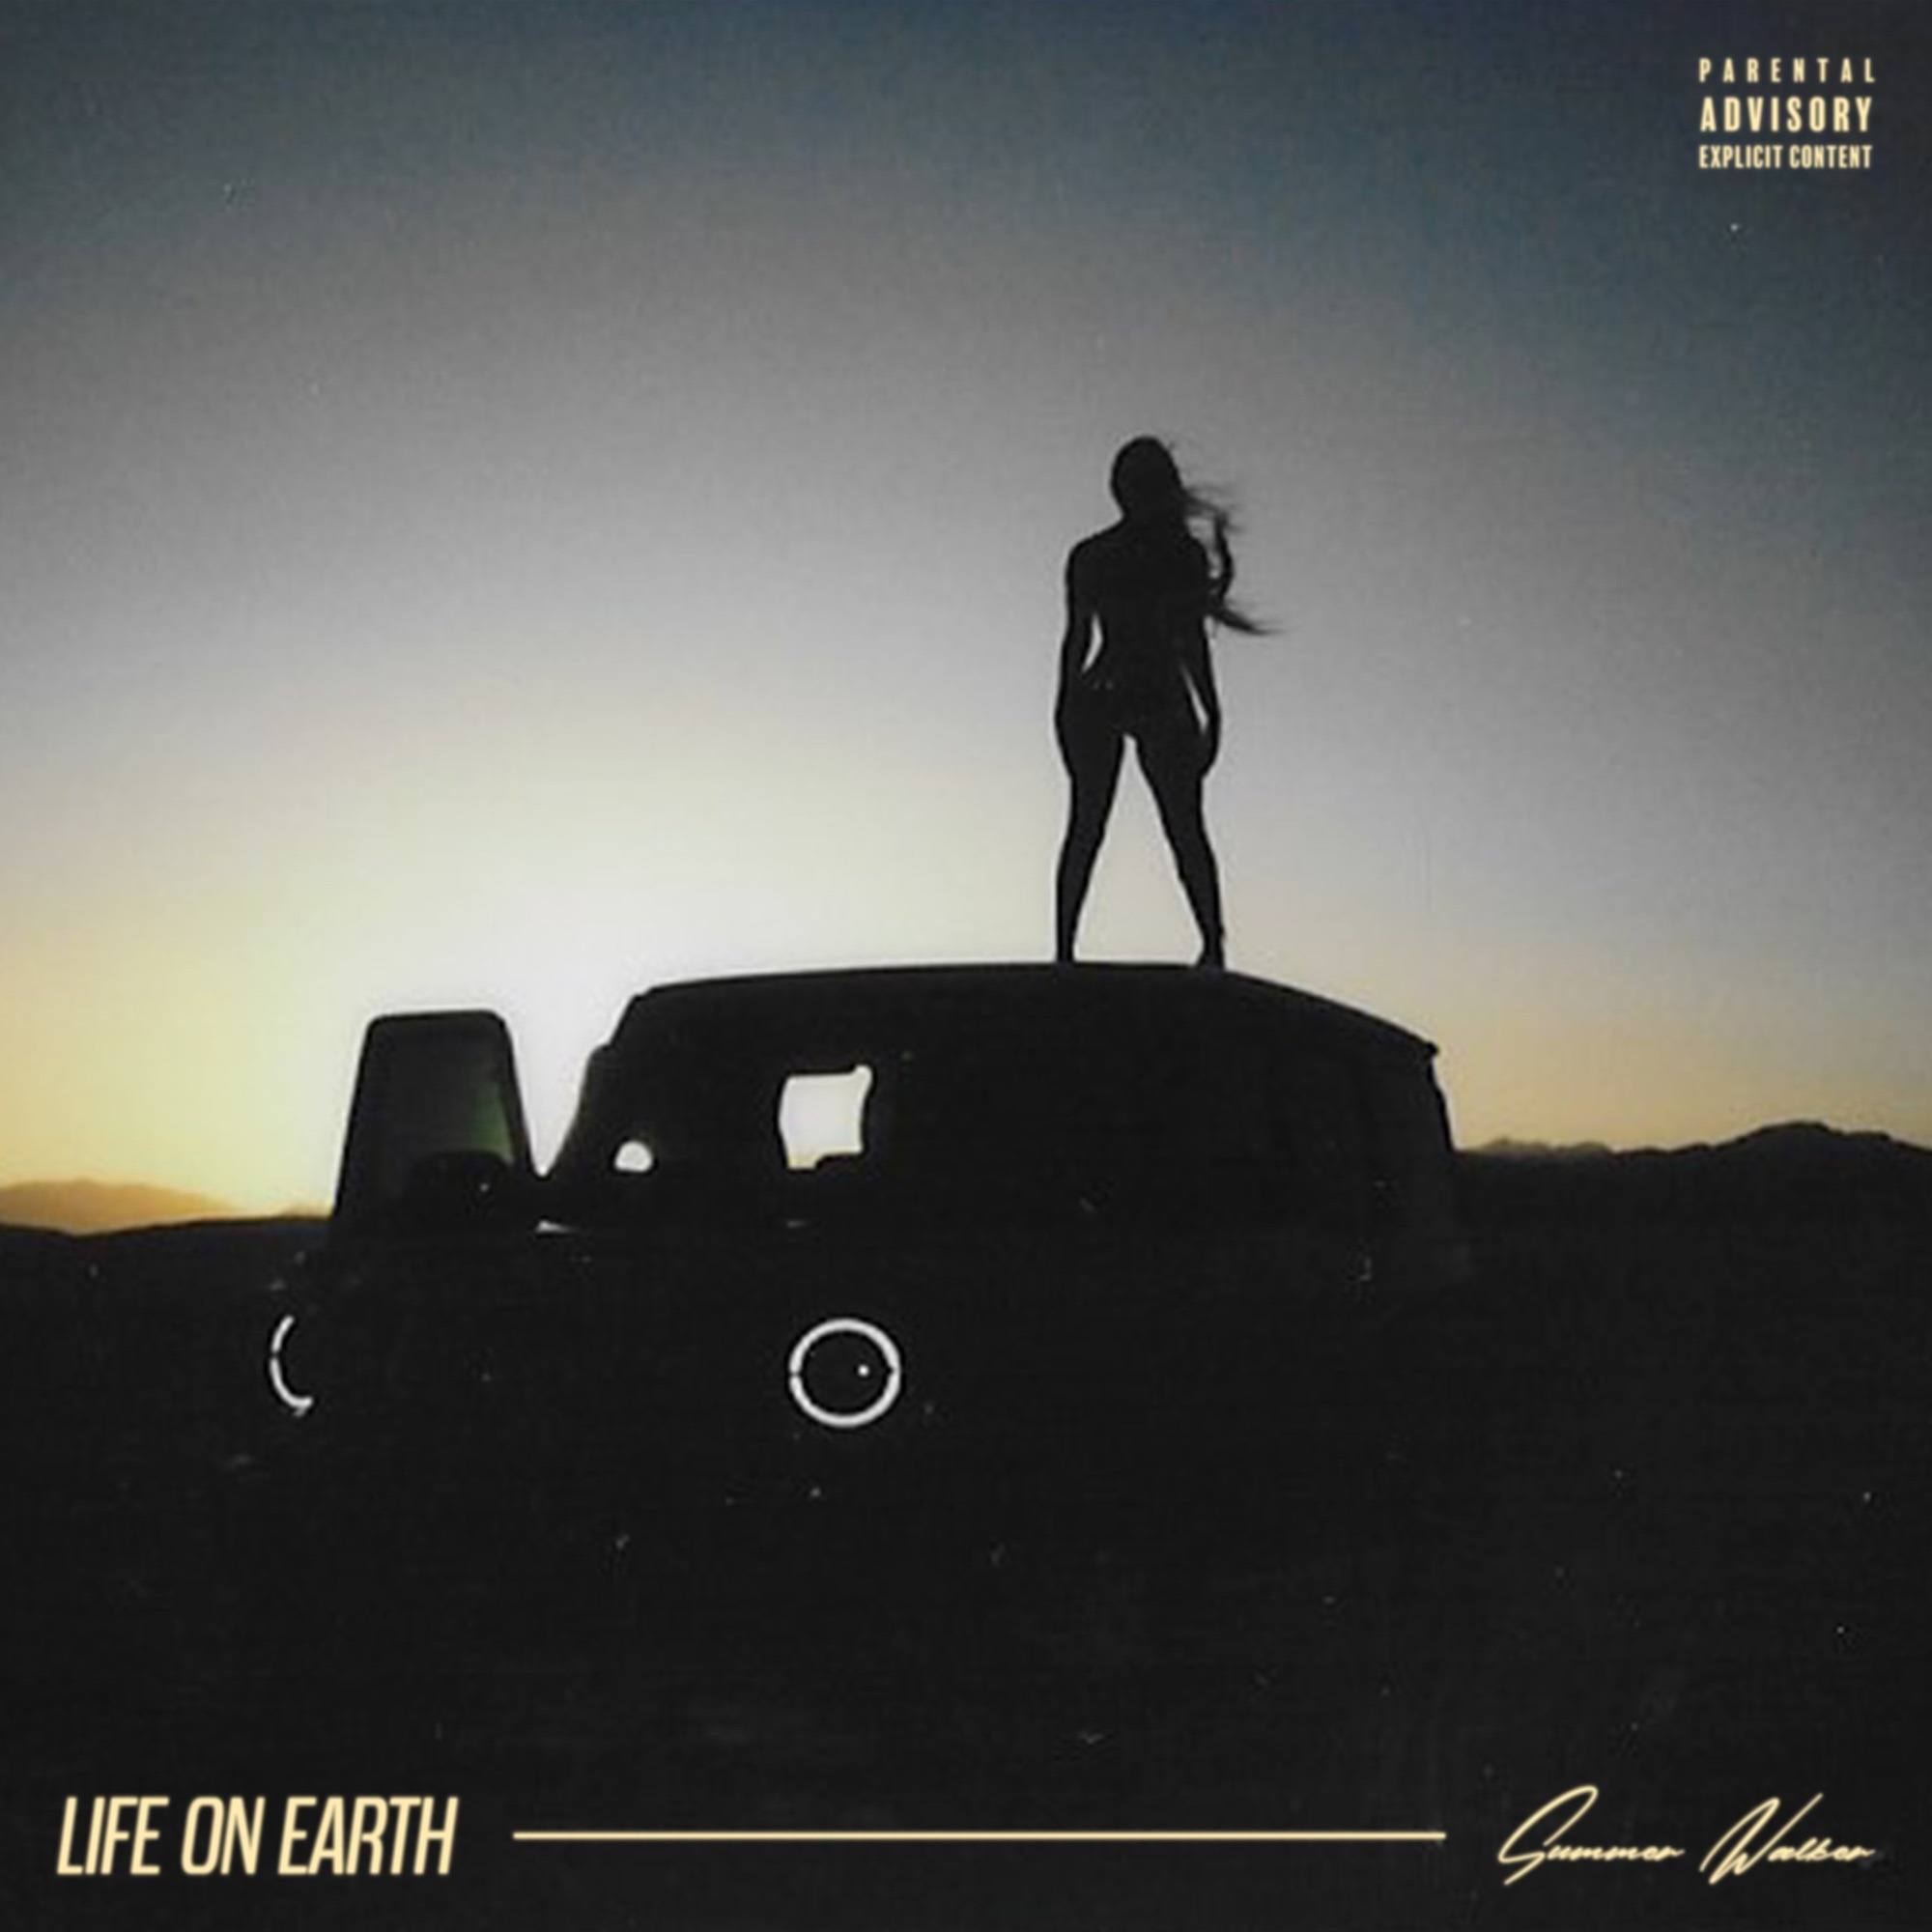 Summer Walker – Life On Earth (EP Stream)